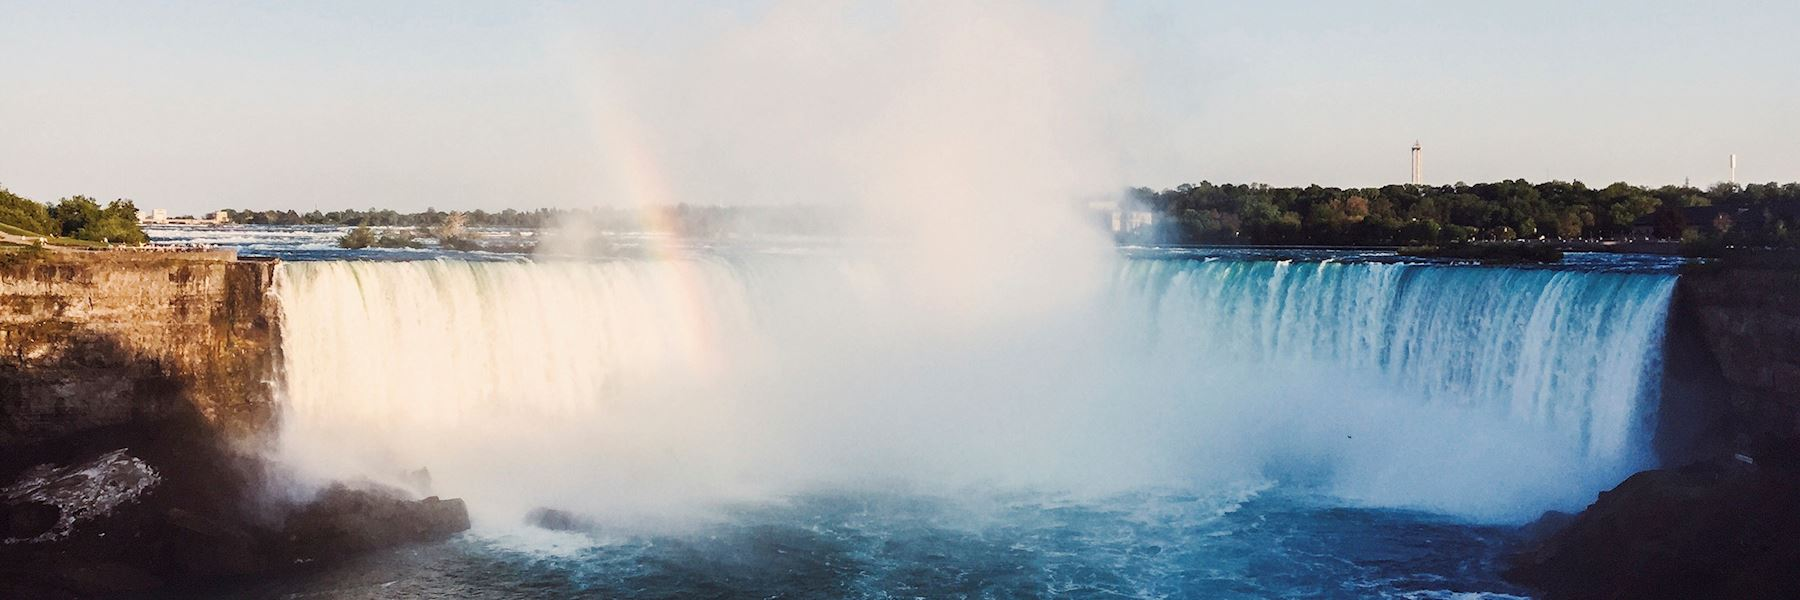 Visit Niagara Falls on a trip to Canada | Audley Travel